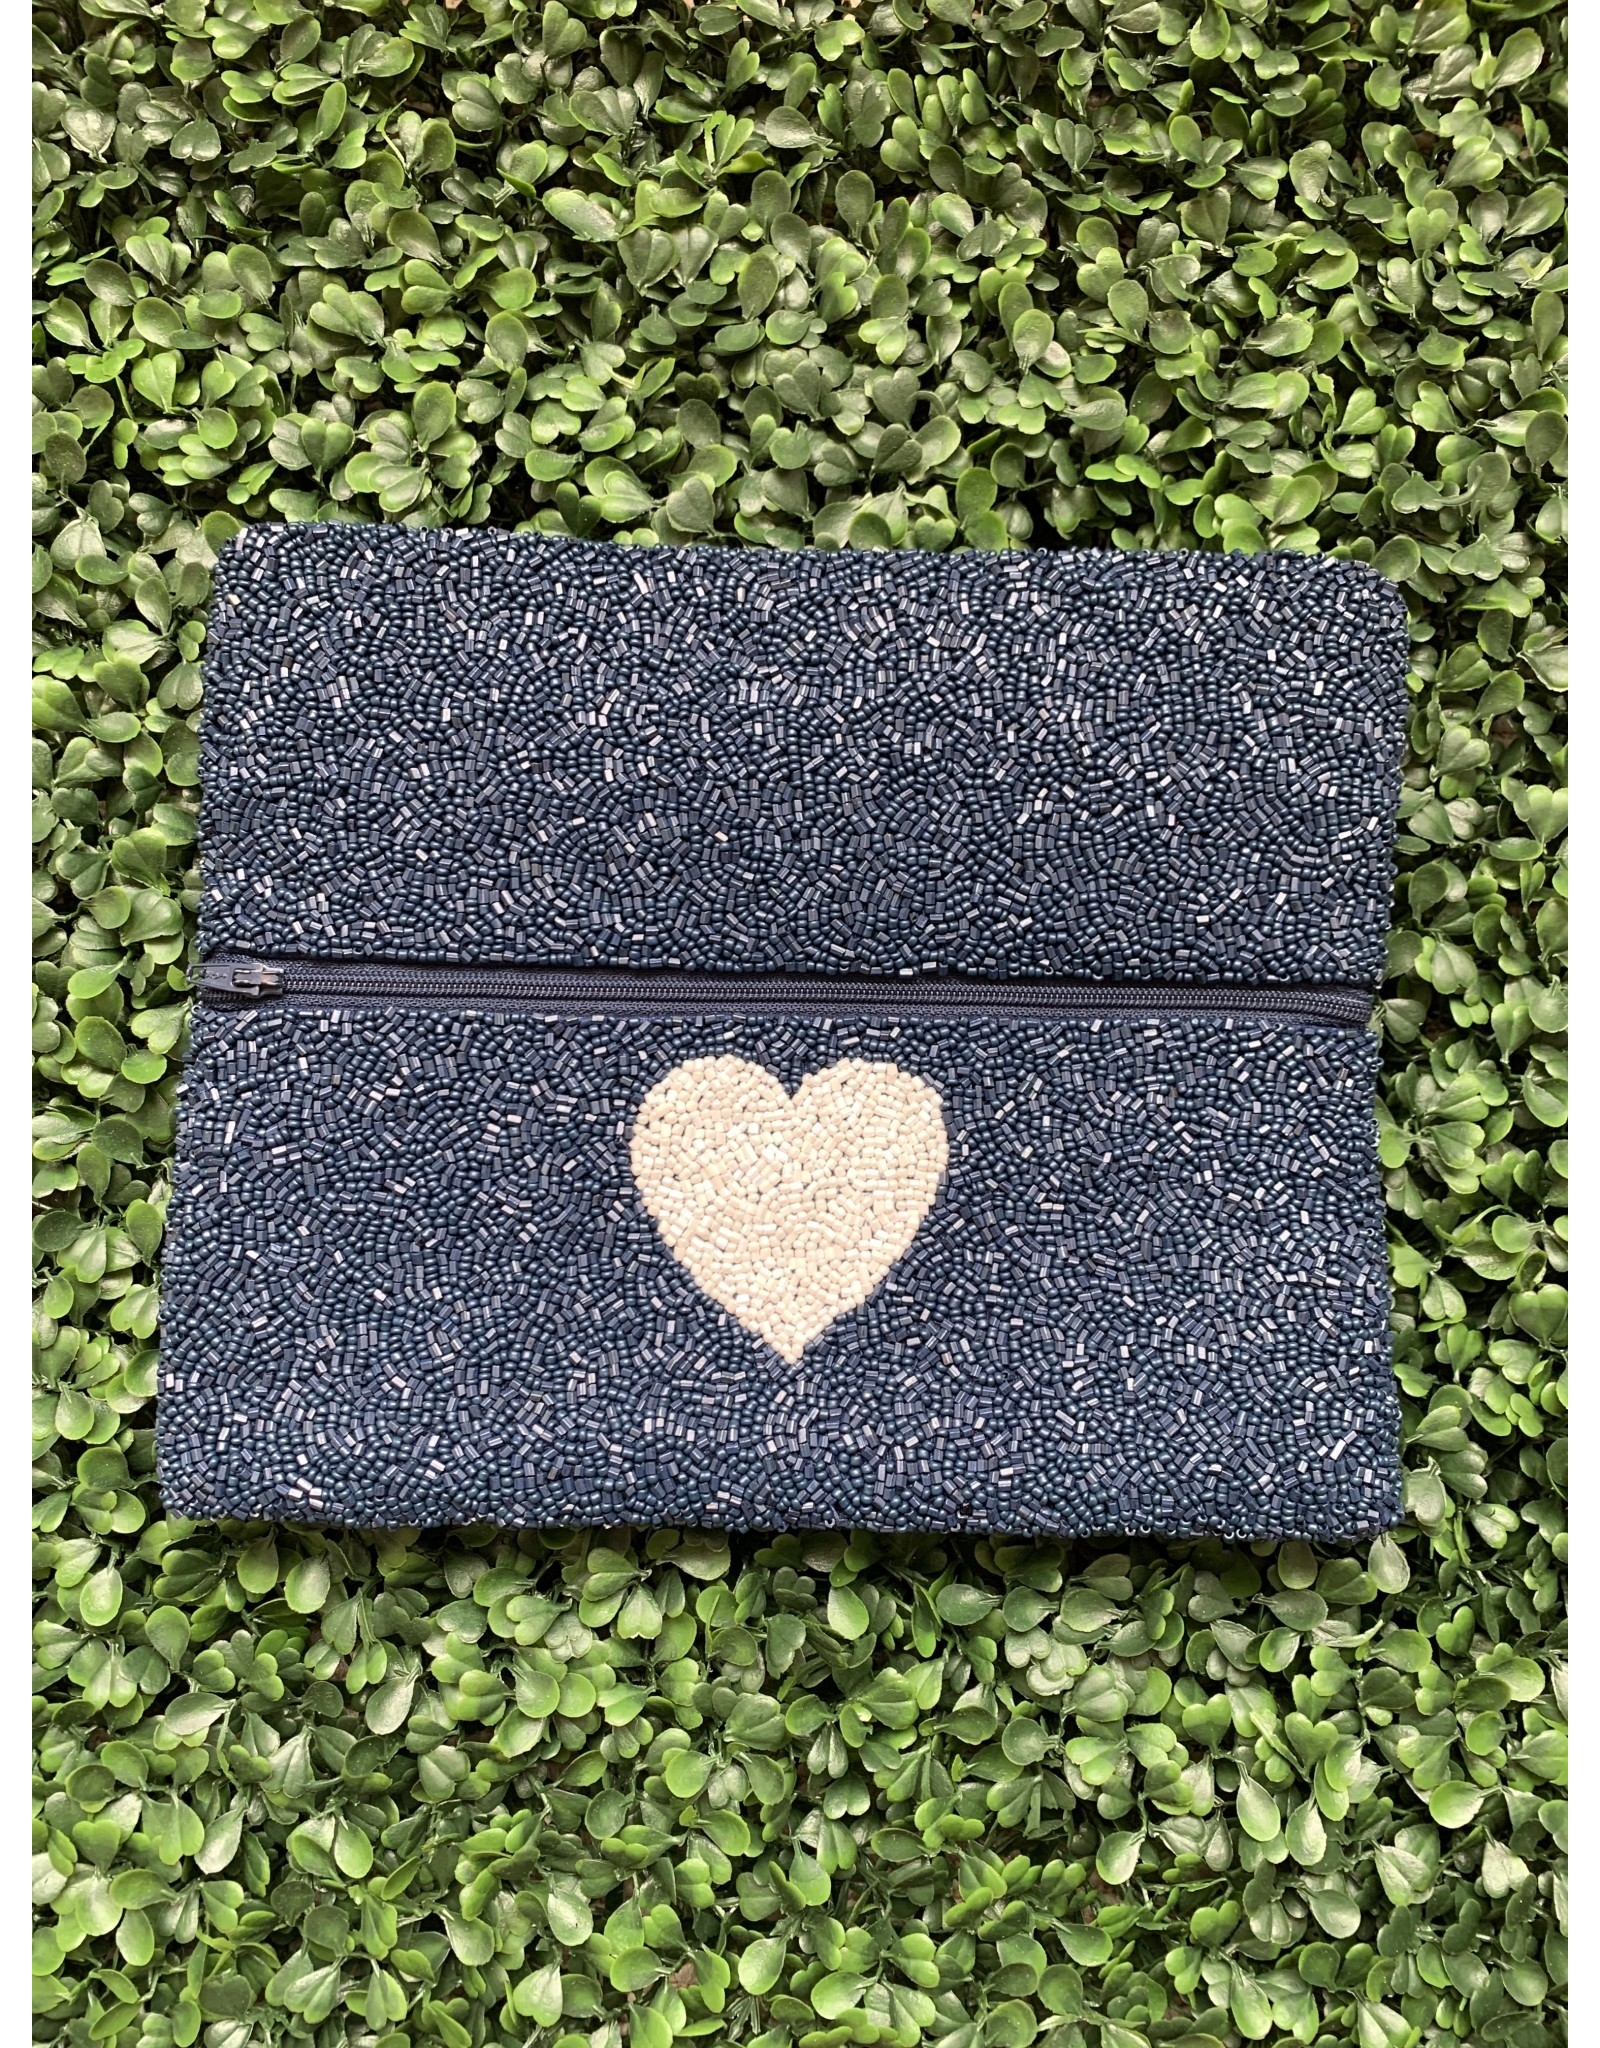 02129 Beaded Clutch